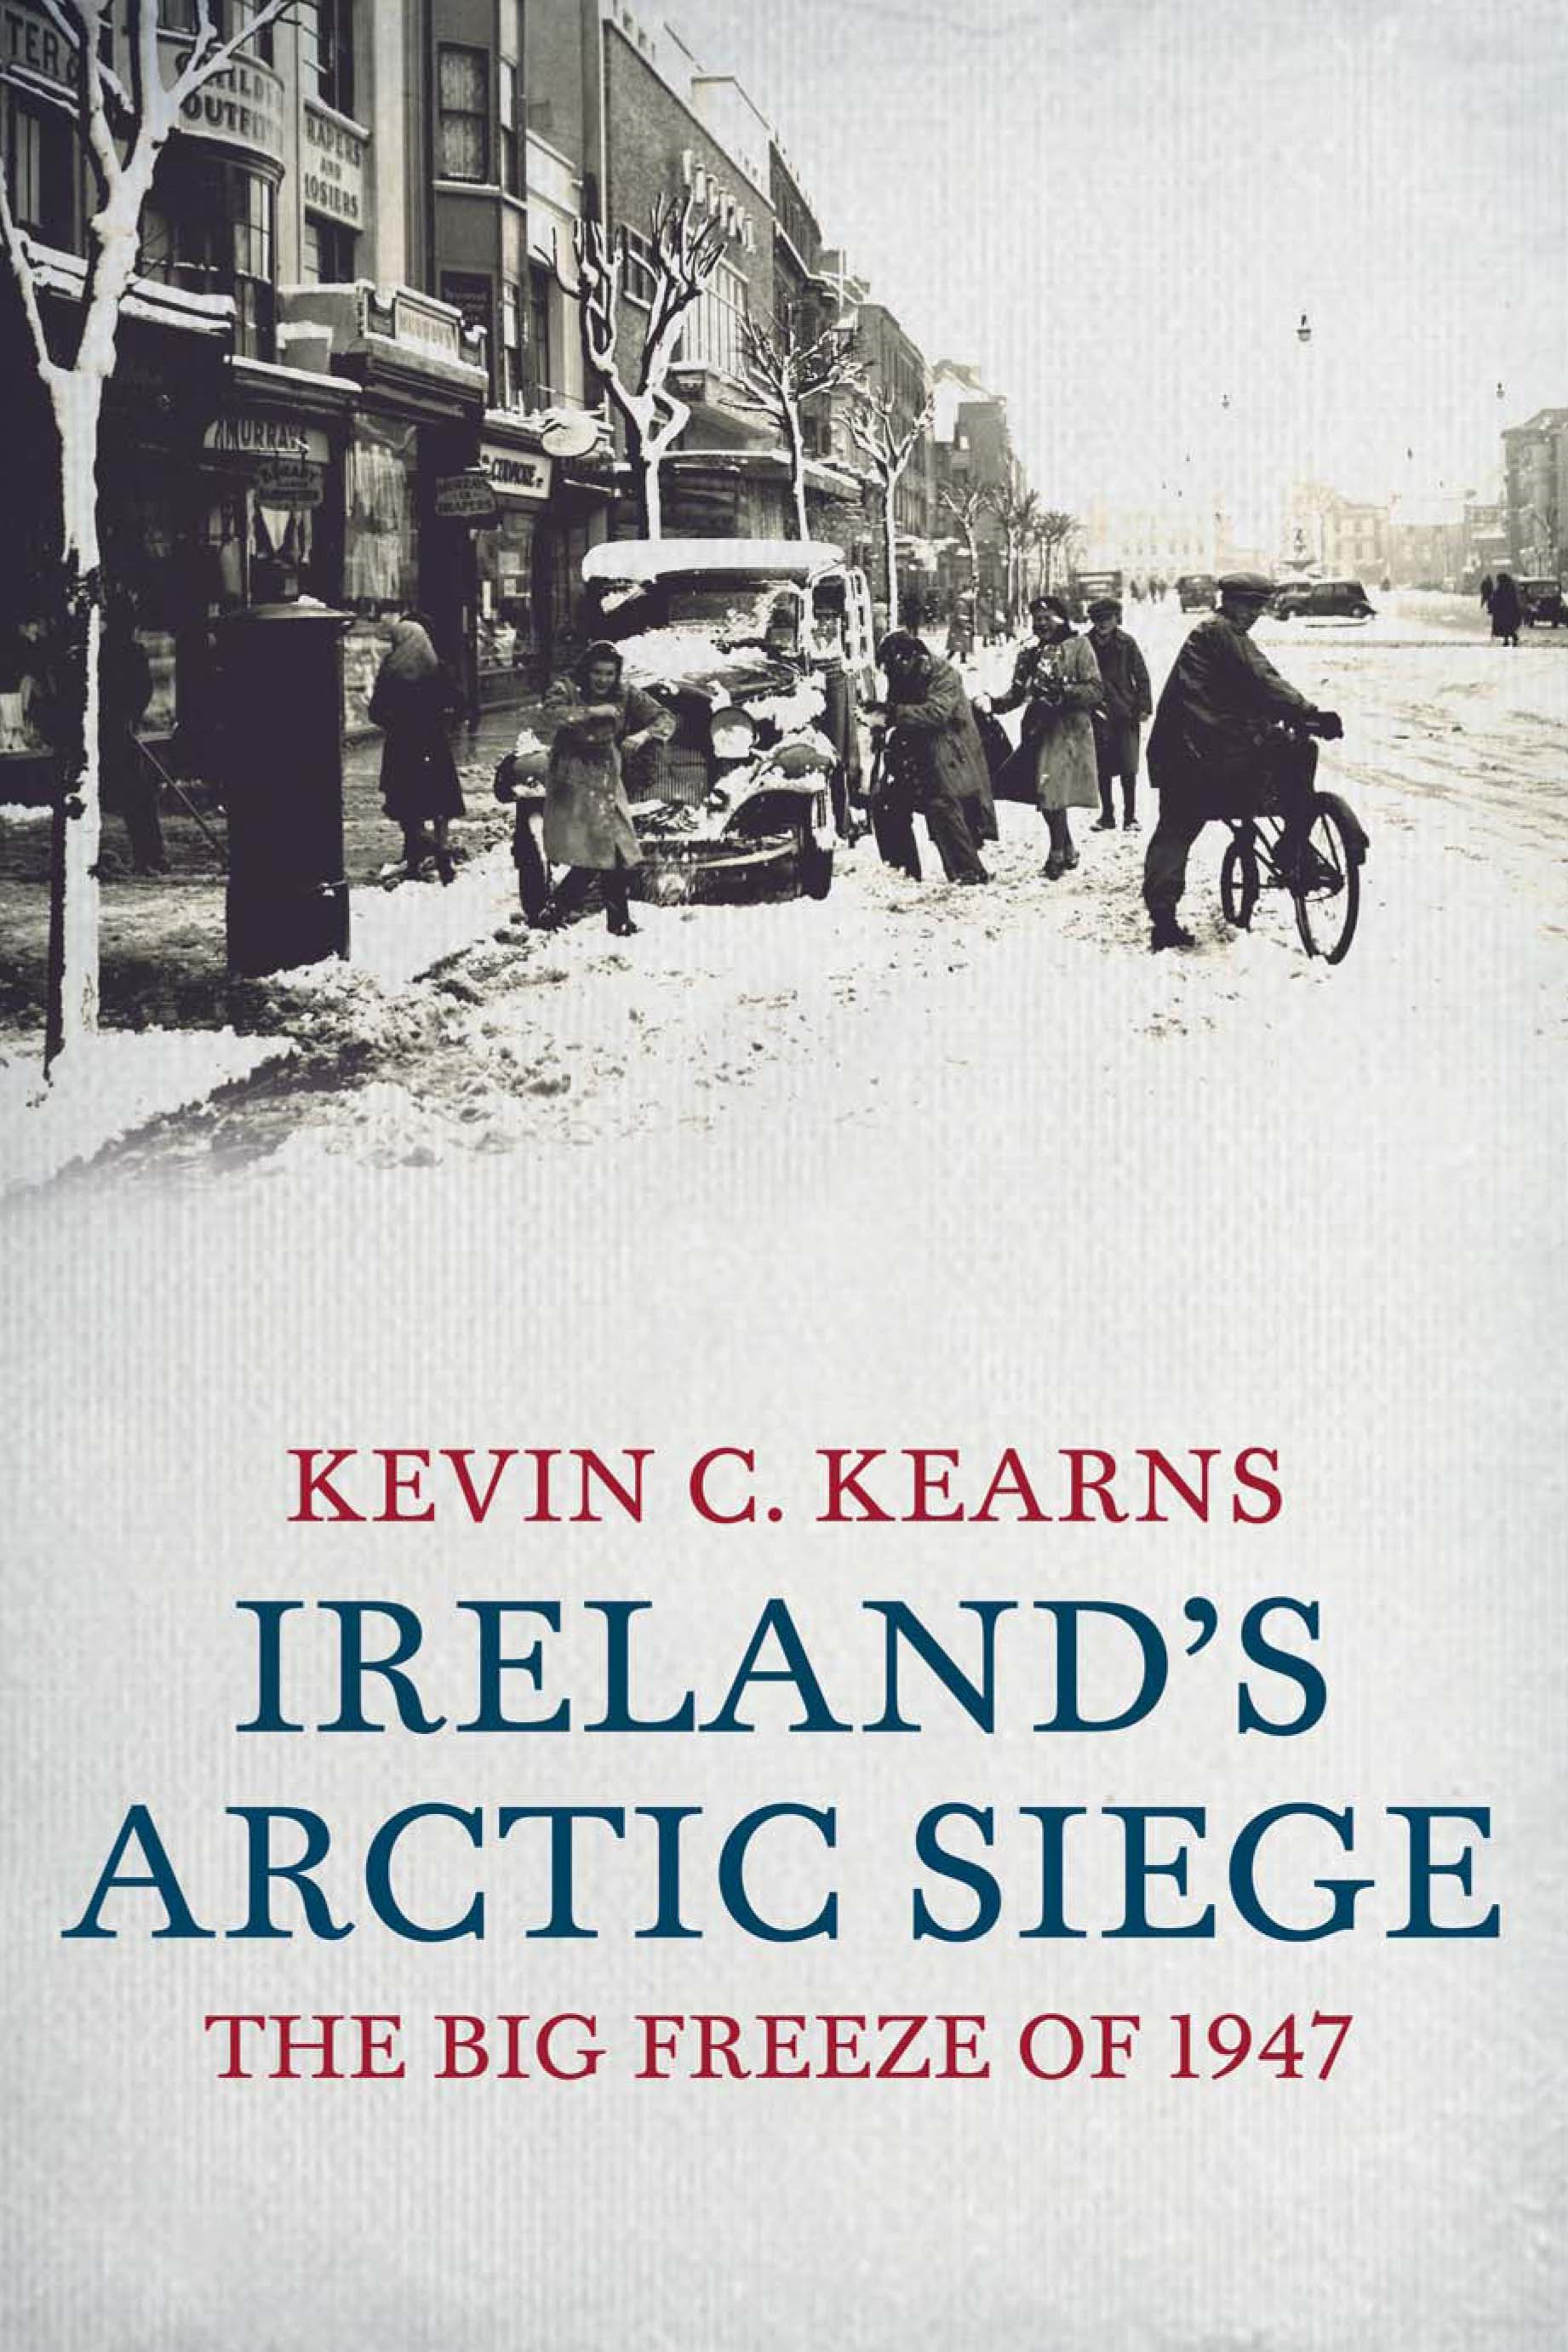 Ireland's Arctic Siege of 1947: The Big Freeze of 1947